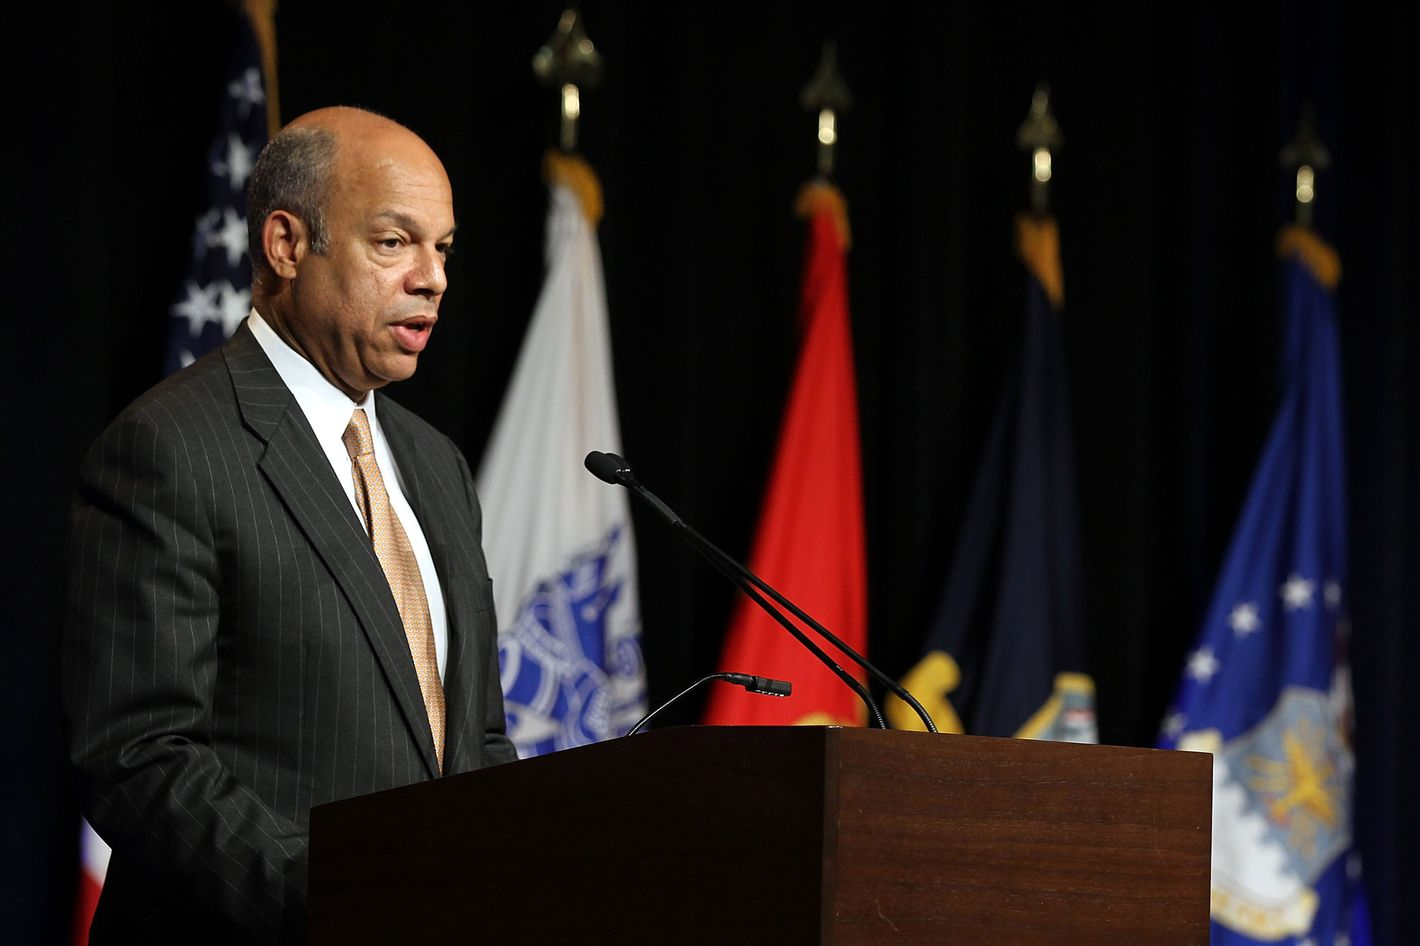 """U.S. Defense Department General Counsel Jeh Johnson delivers keynote remarks during an event to observe the """"Lesbian, Gay, Bisexual and Transgender Pride Month"""" June 26, 2012 at the Pentagon in Arlington, Virginia. It was the first-ever LGBT event held at the Pentagon."""